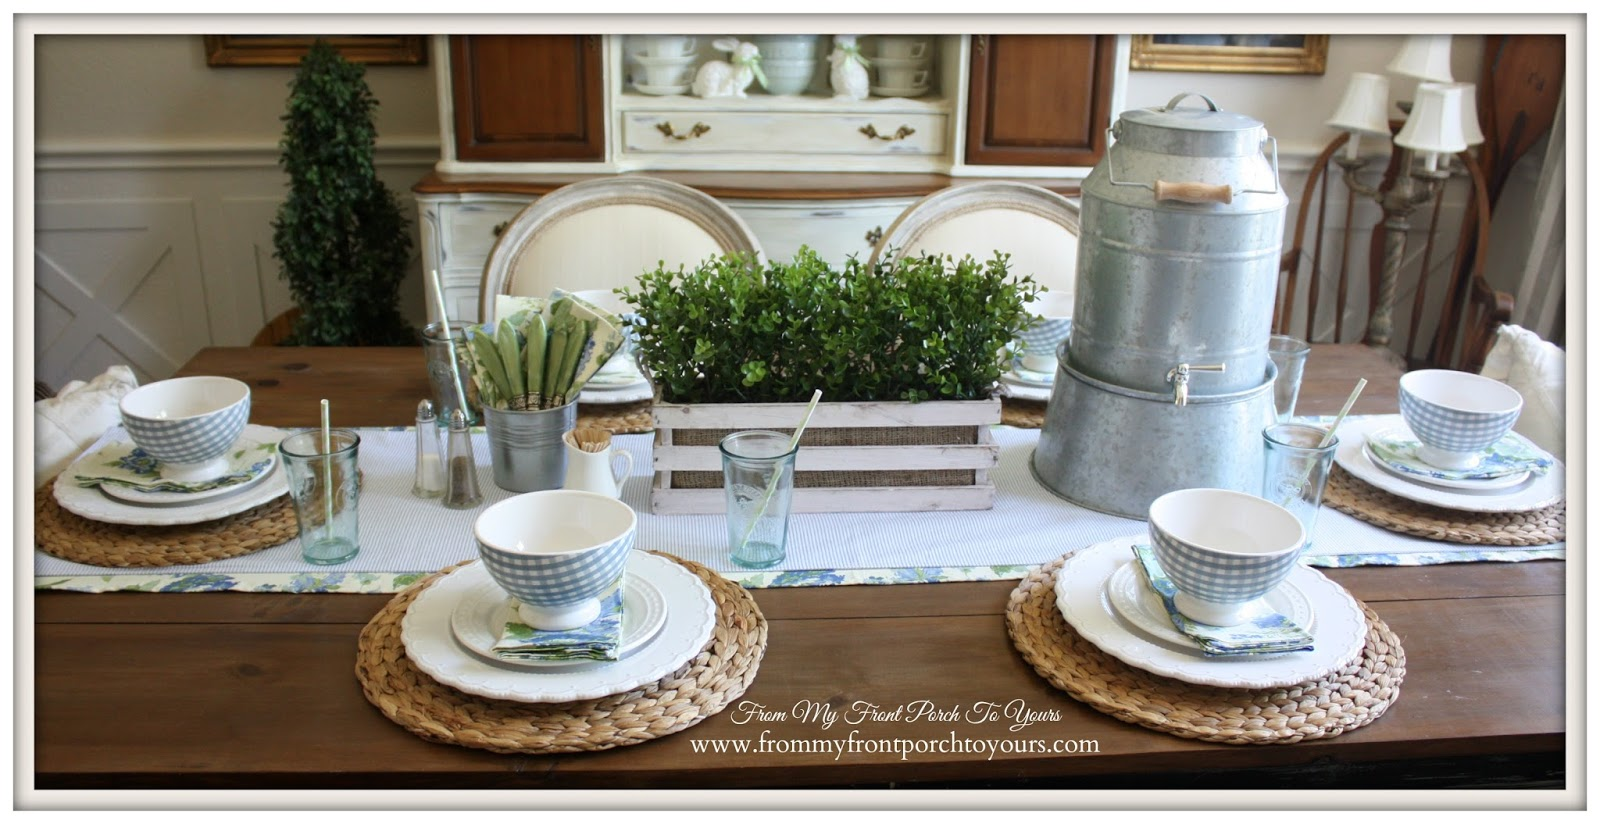 Farmhouse accents used to create a spring brunch table setting at From My Front Porch To Yours.